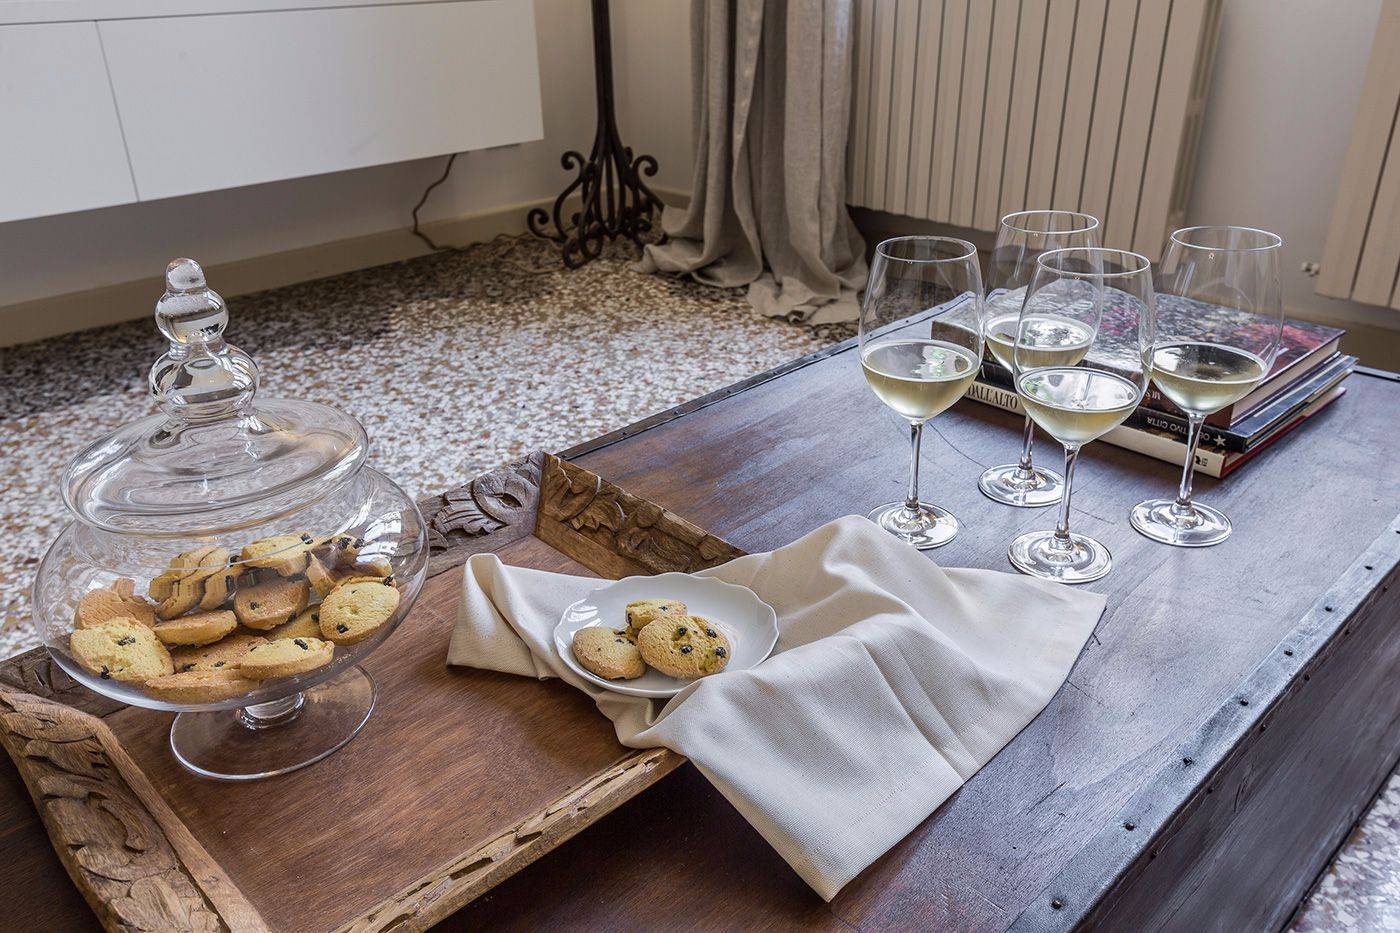 relax with your friends after a day of sightseeing with a glass of Prosecco and some delicious local specialities